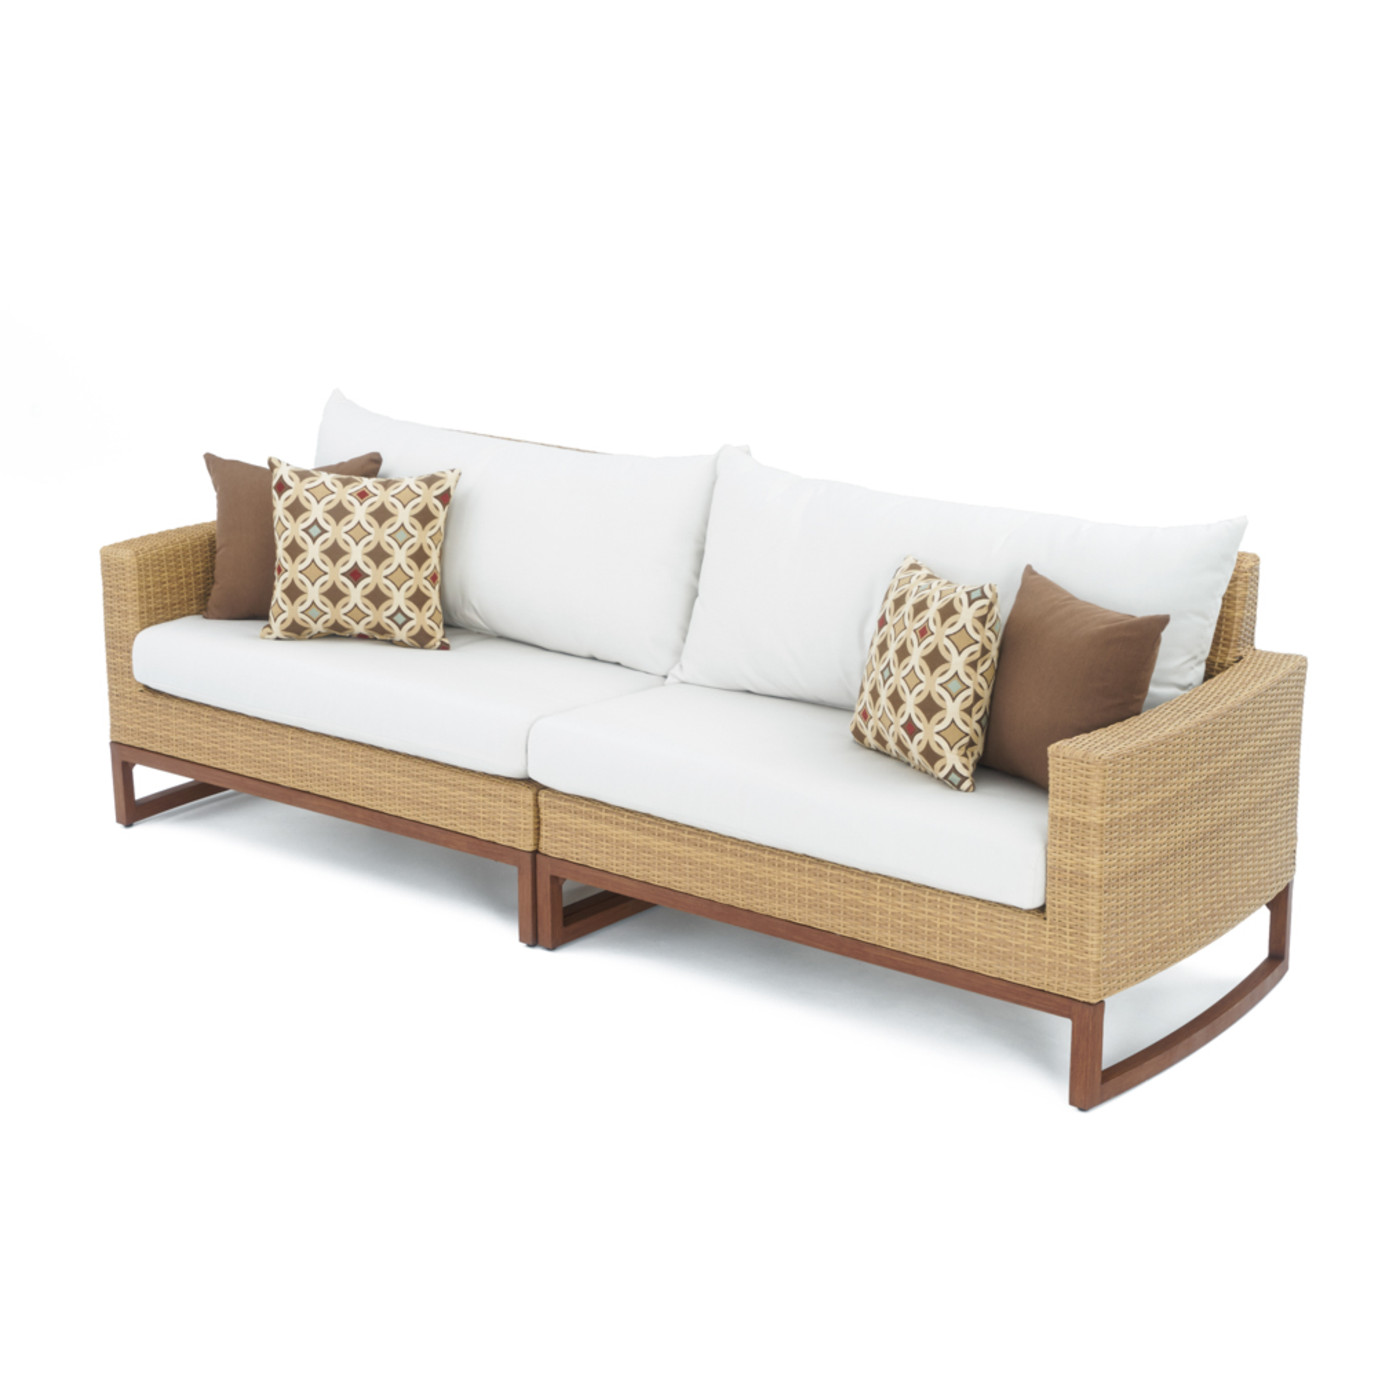 Mili™ 8pc Deep Seating Set - Moroccan Cream